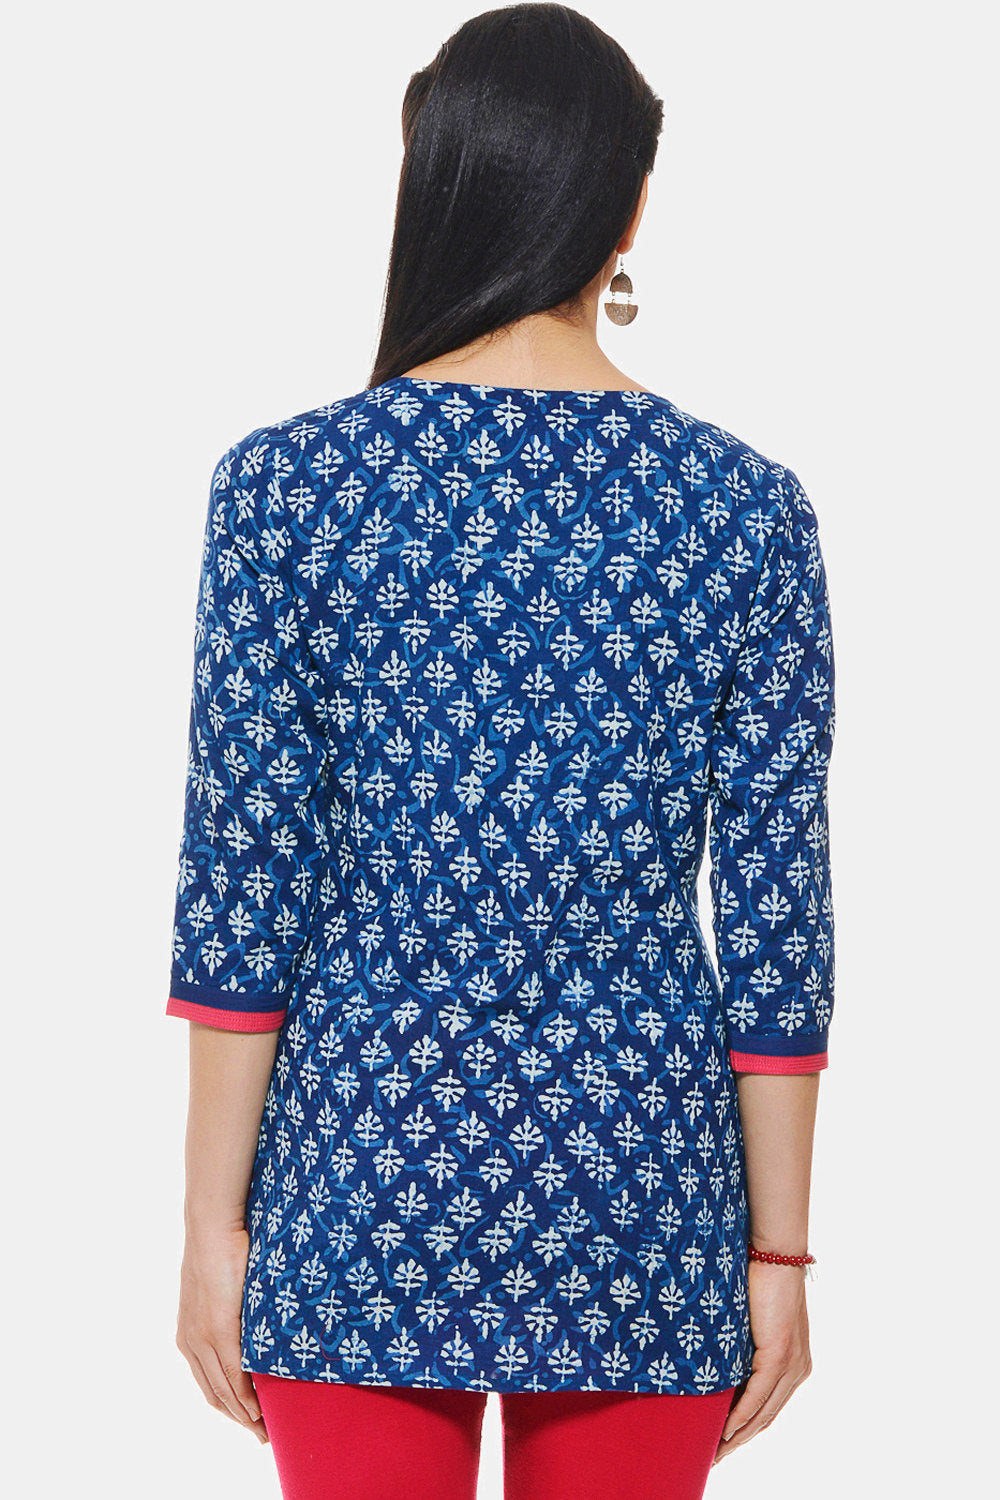 Indigo Hand block printed Ethnic Indian Tunic/ Kurti